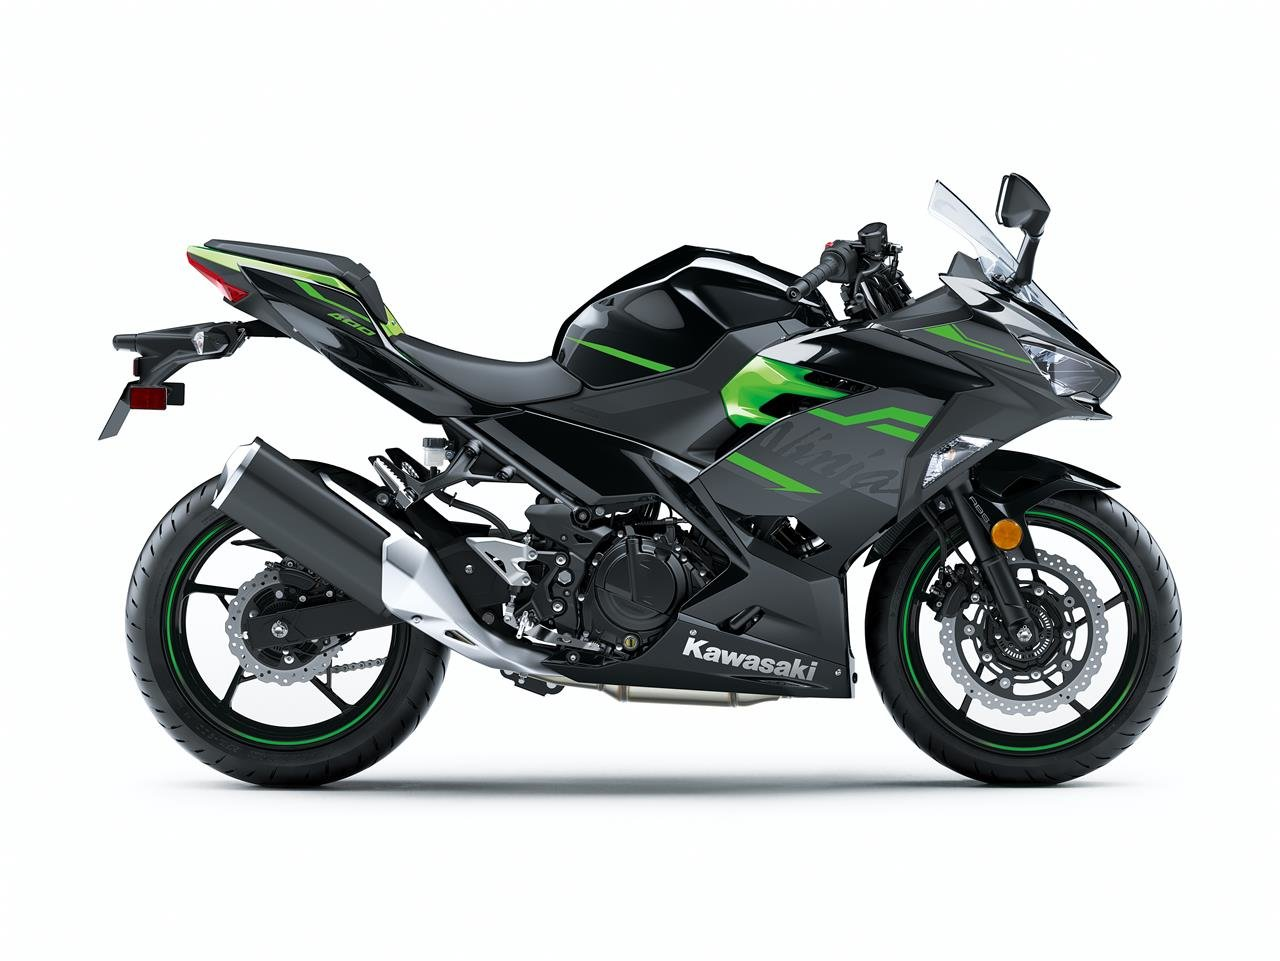 New 2020 Kawasaki Ninja 400 ABS**FREE DELIVERY** For Sale (picture 2 of 5)